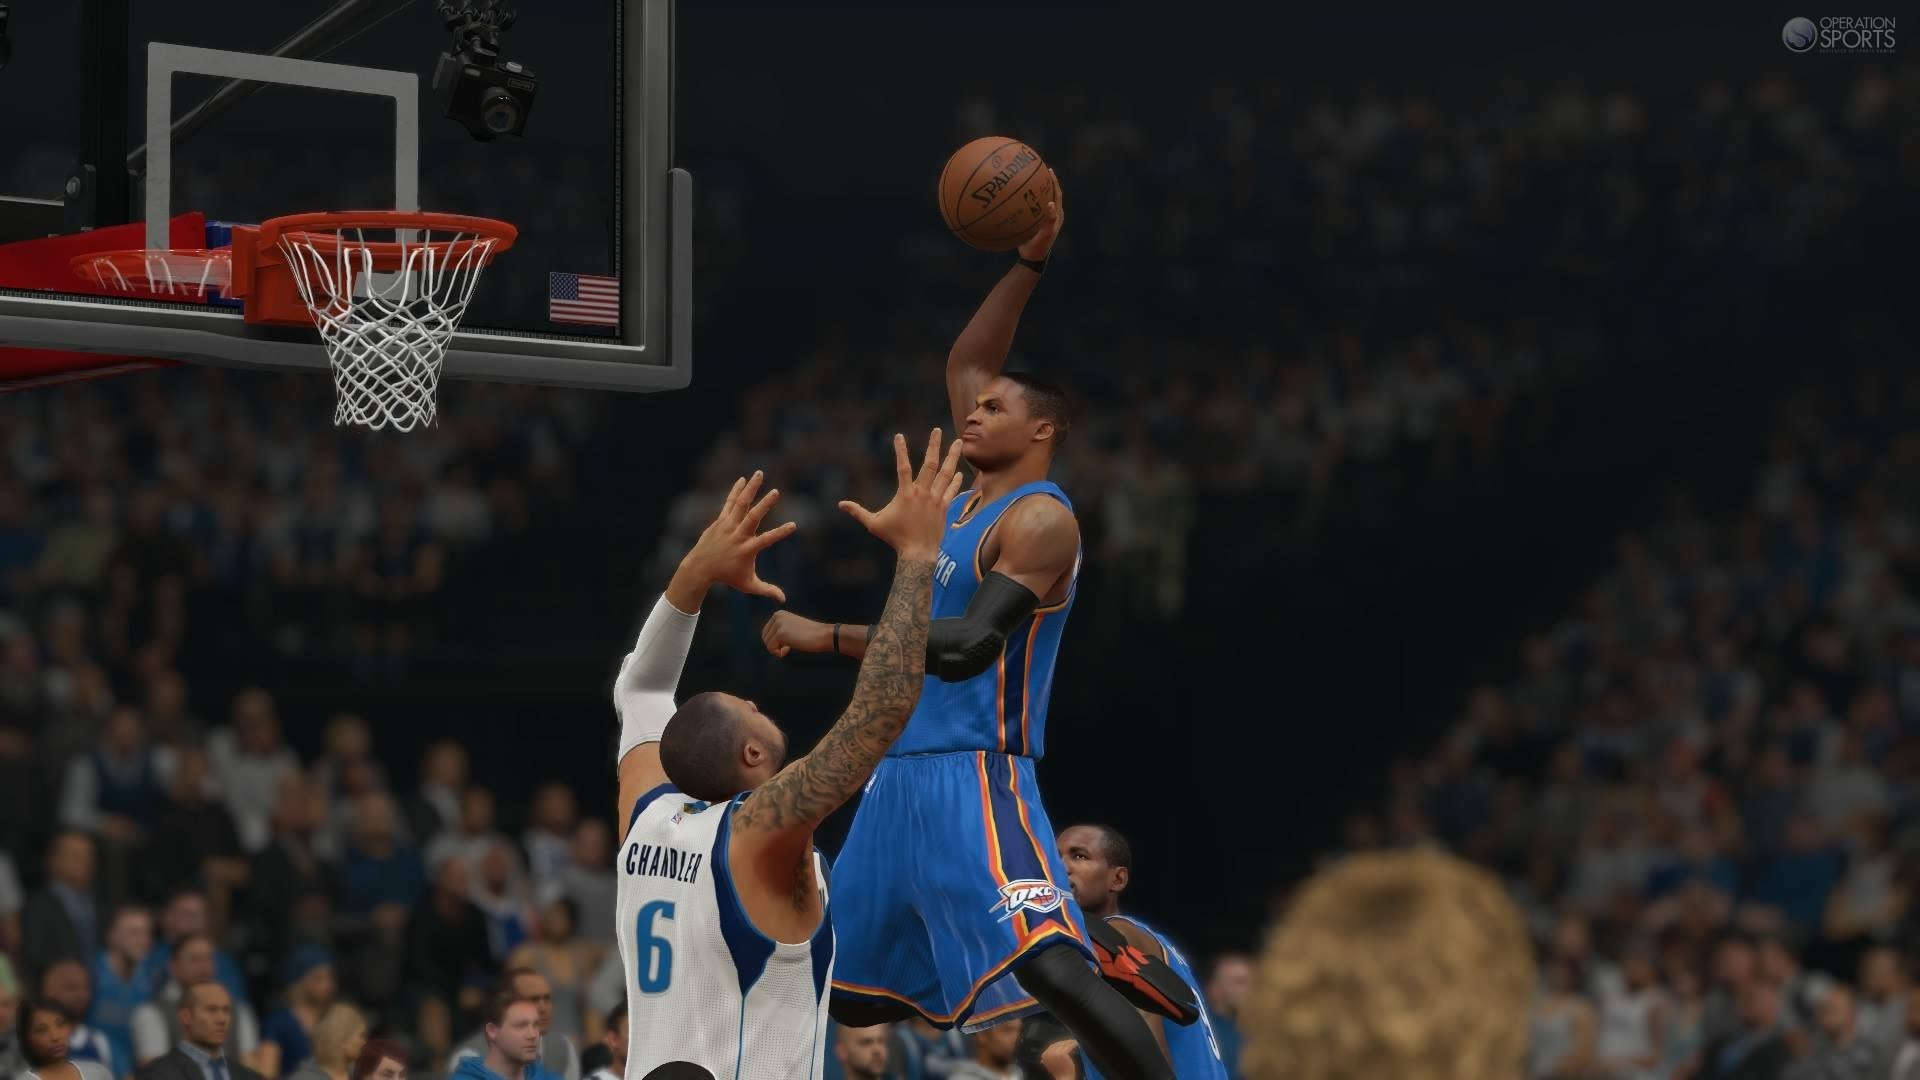 NBA 2K15 Roster Update Details (12-28-14) – Westbrook, Wade & More Going Up